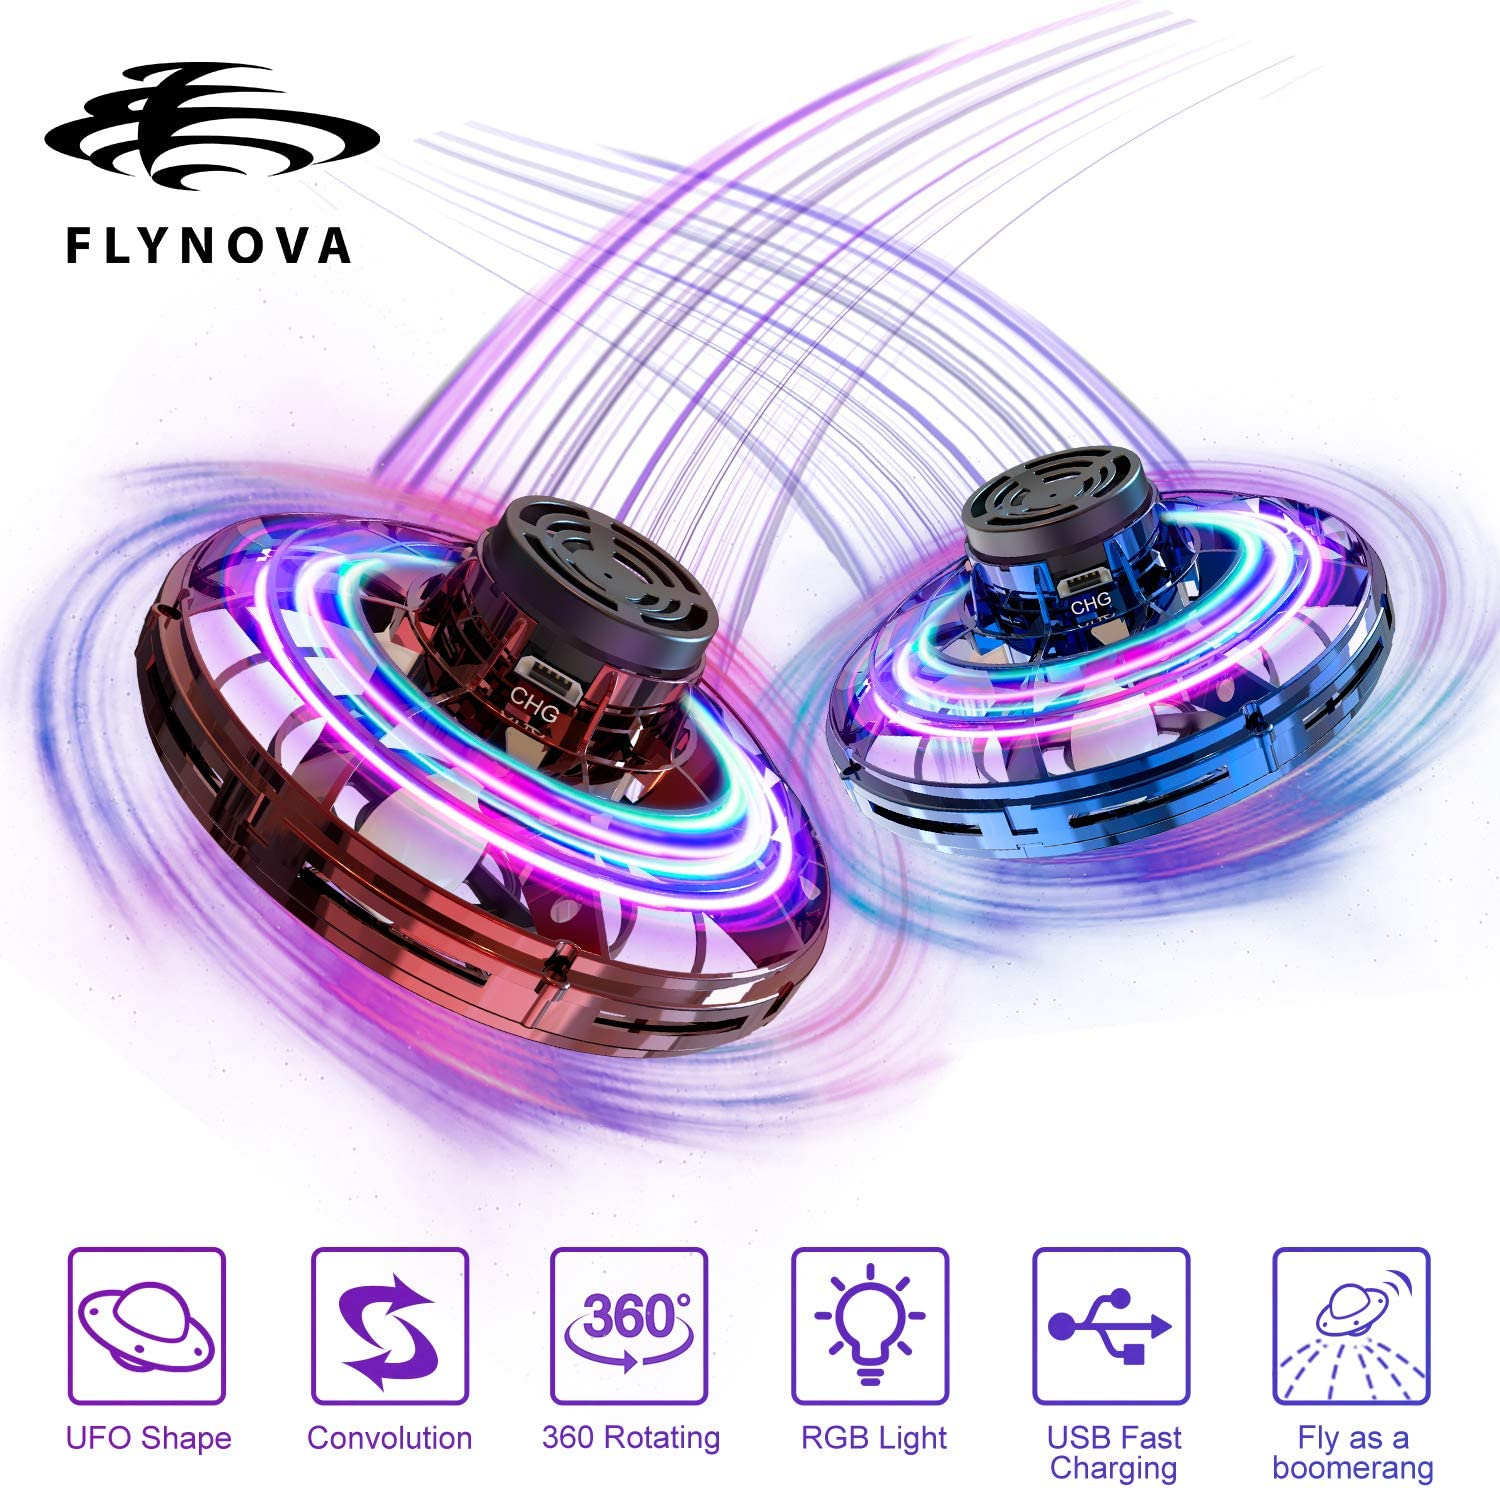 WYNC FlyNova,Hand Operated Drones for Kids or Adults,Stress Reliever Social Toys for Boys and Girls,Suitable for Outdoor,Home,Office,Garden 2PICS(Blue+Red)